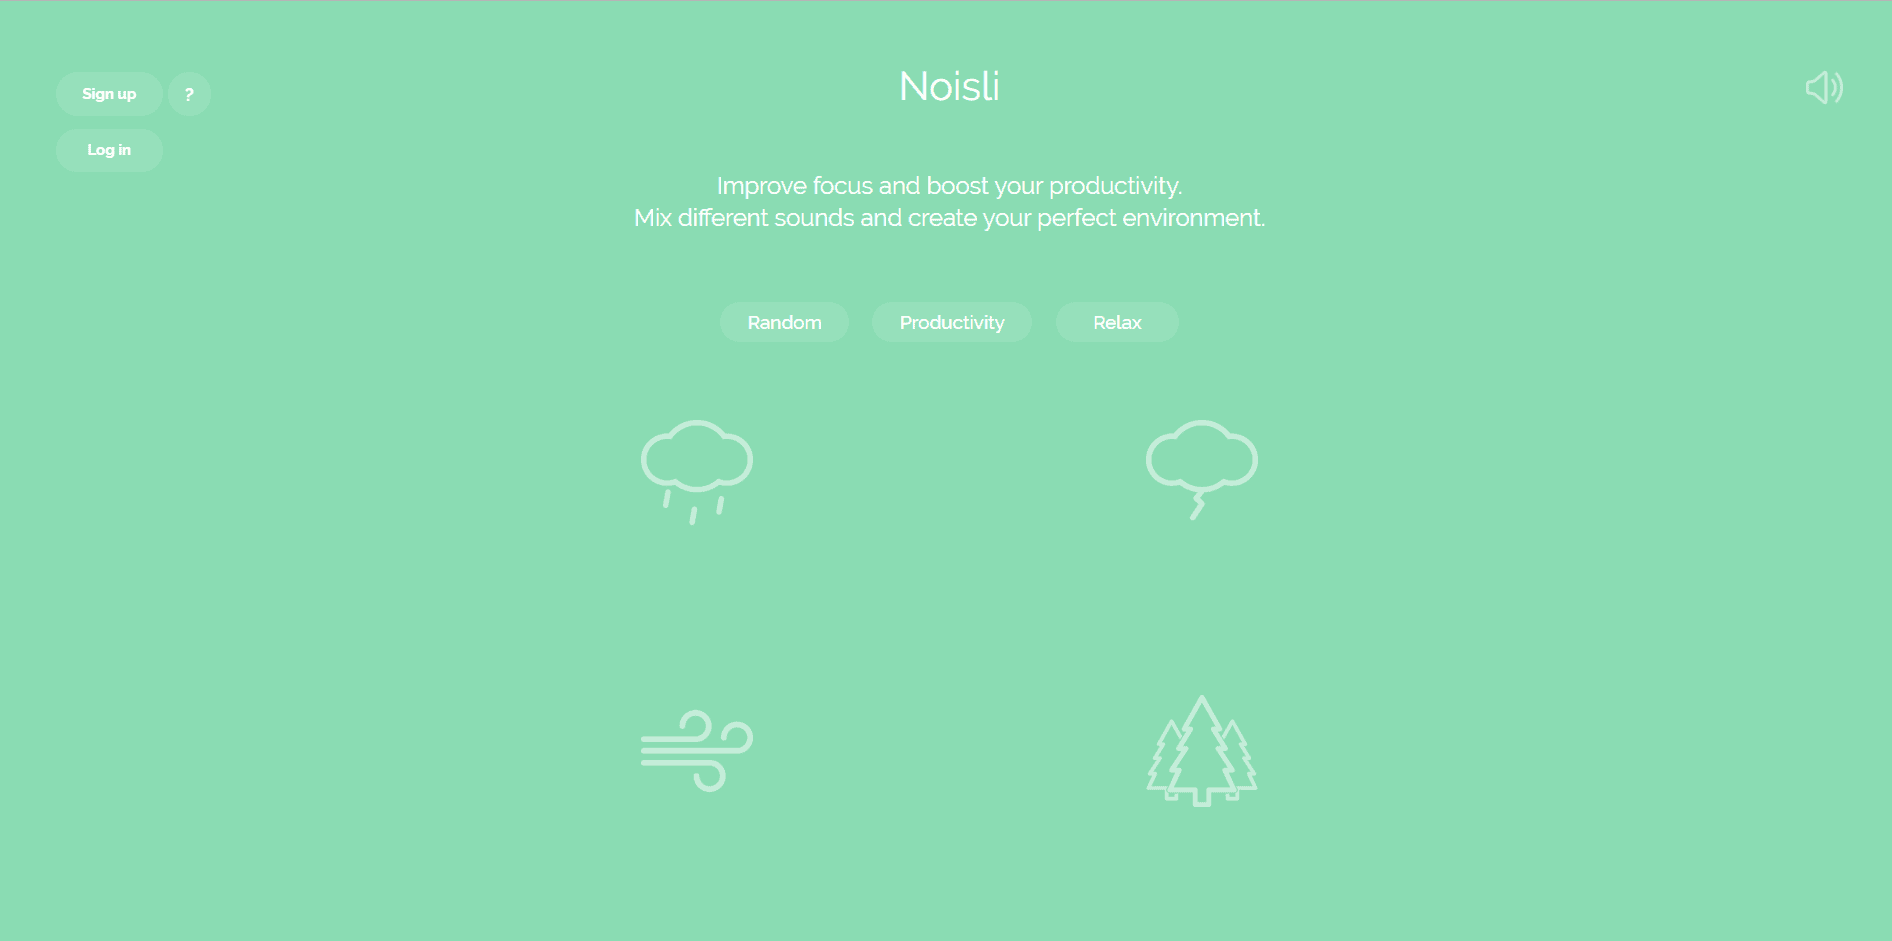 Noisli homepage. Options are given for different types of sounds. Icons include a rain cloud, thunder bolt, wind, or trees.